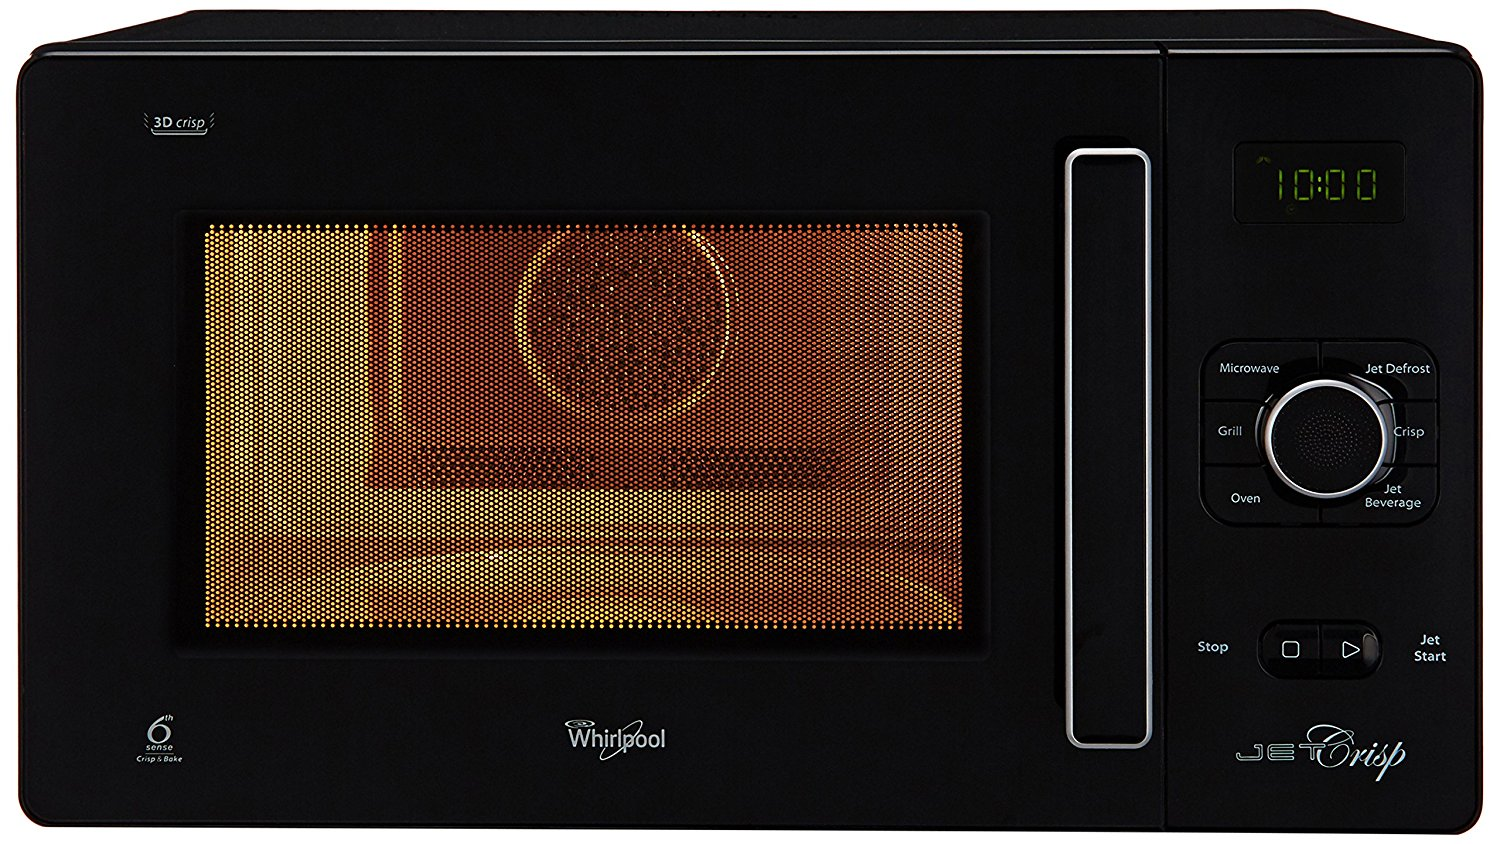 25 liters capacity Whirlpool convection microwave oven